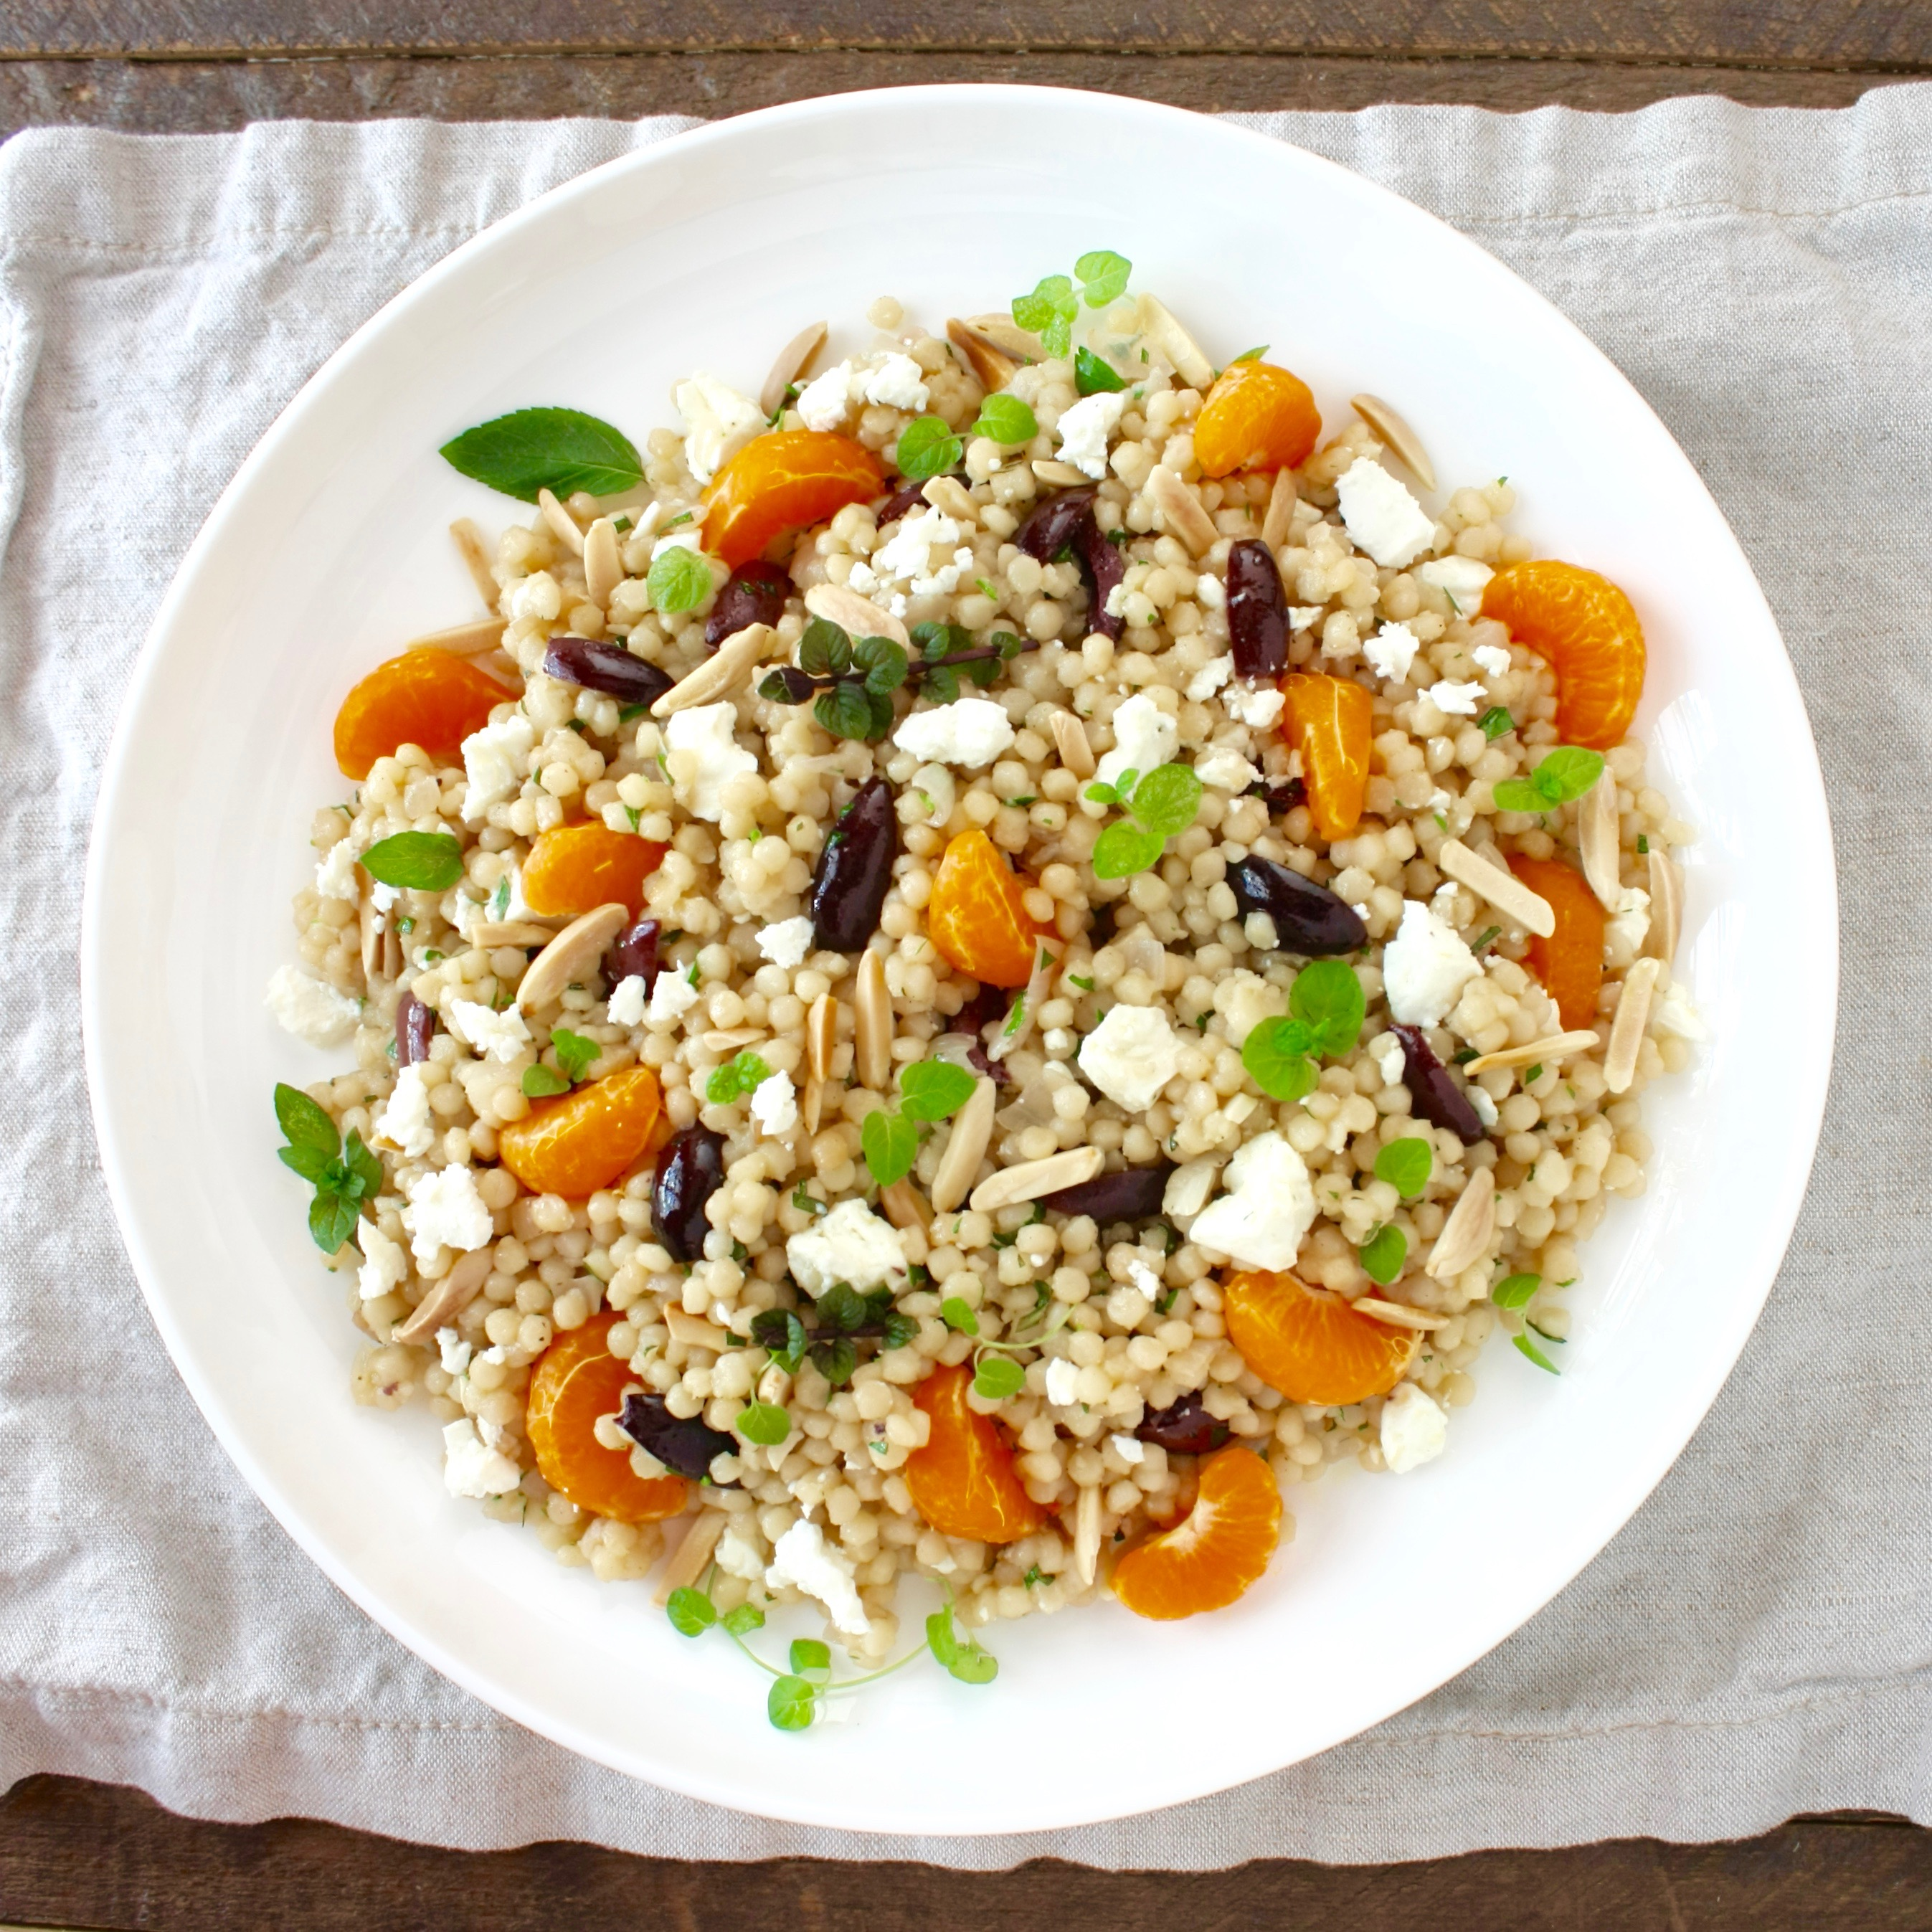 Discussion on this topic: Couscous Salad With Feta and Mint, couscous-salad-with-feta-and-mint/